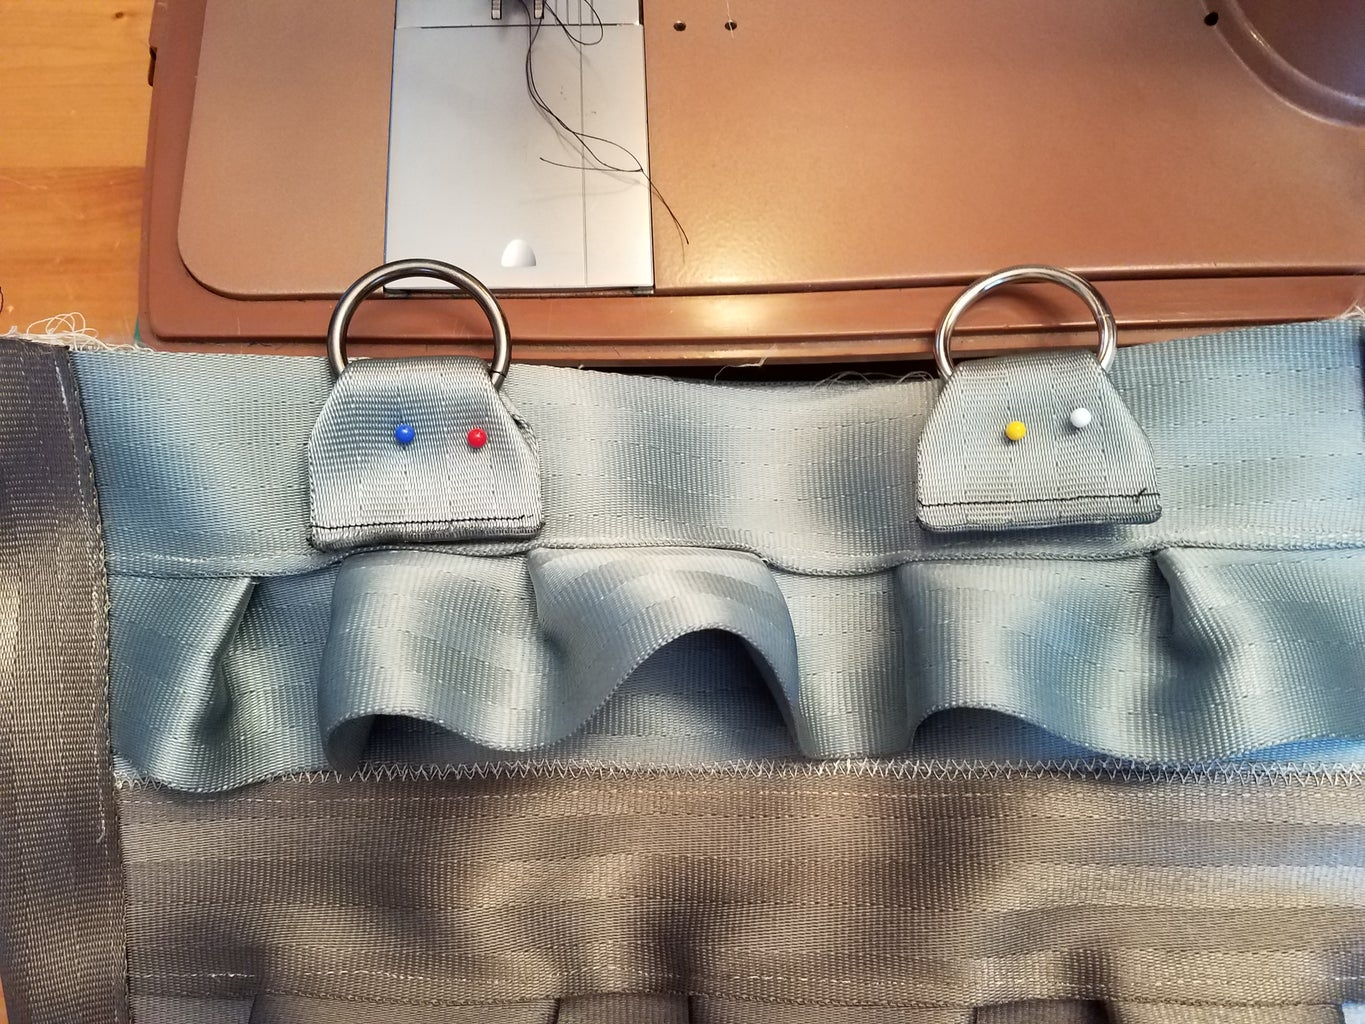 Attach Handle Fasteners to Outside of Bag